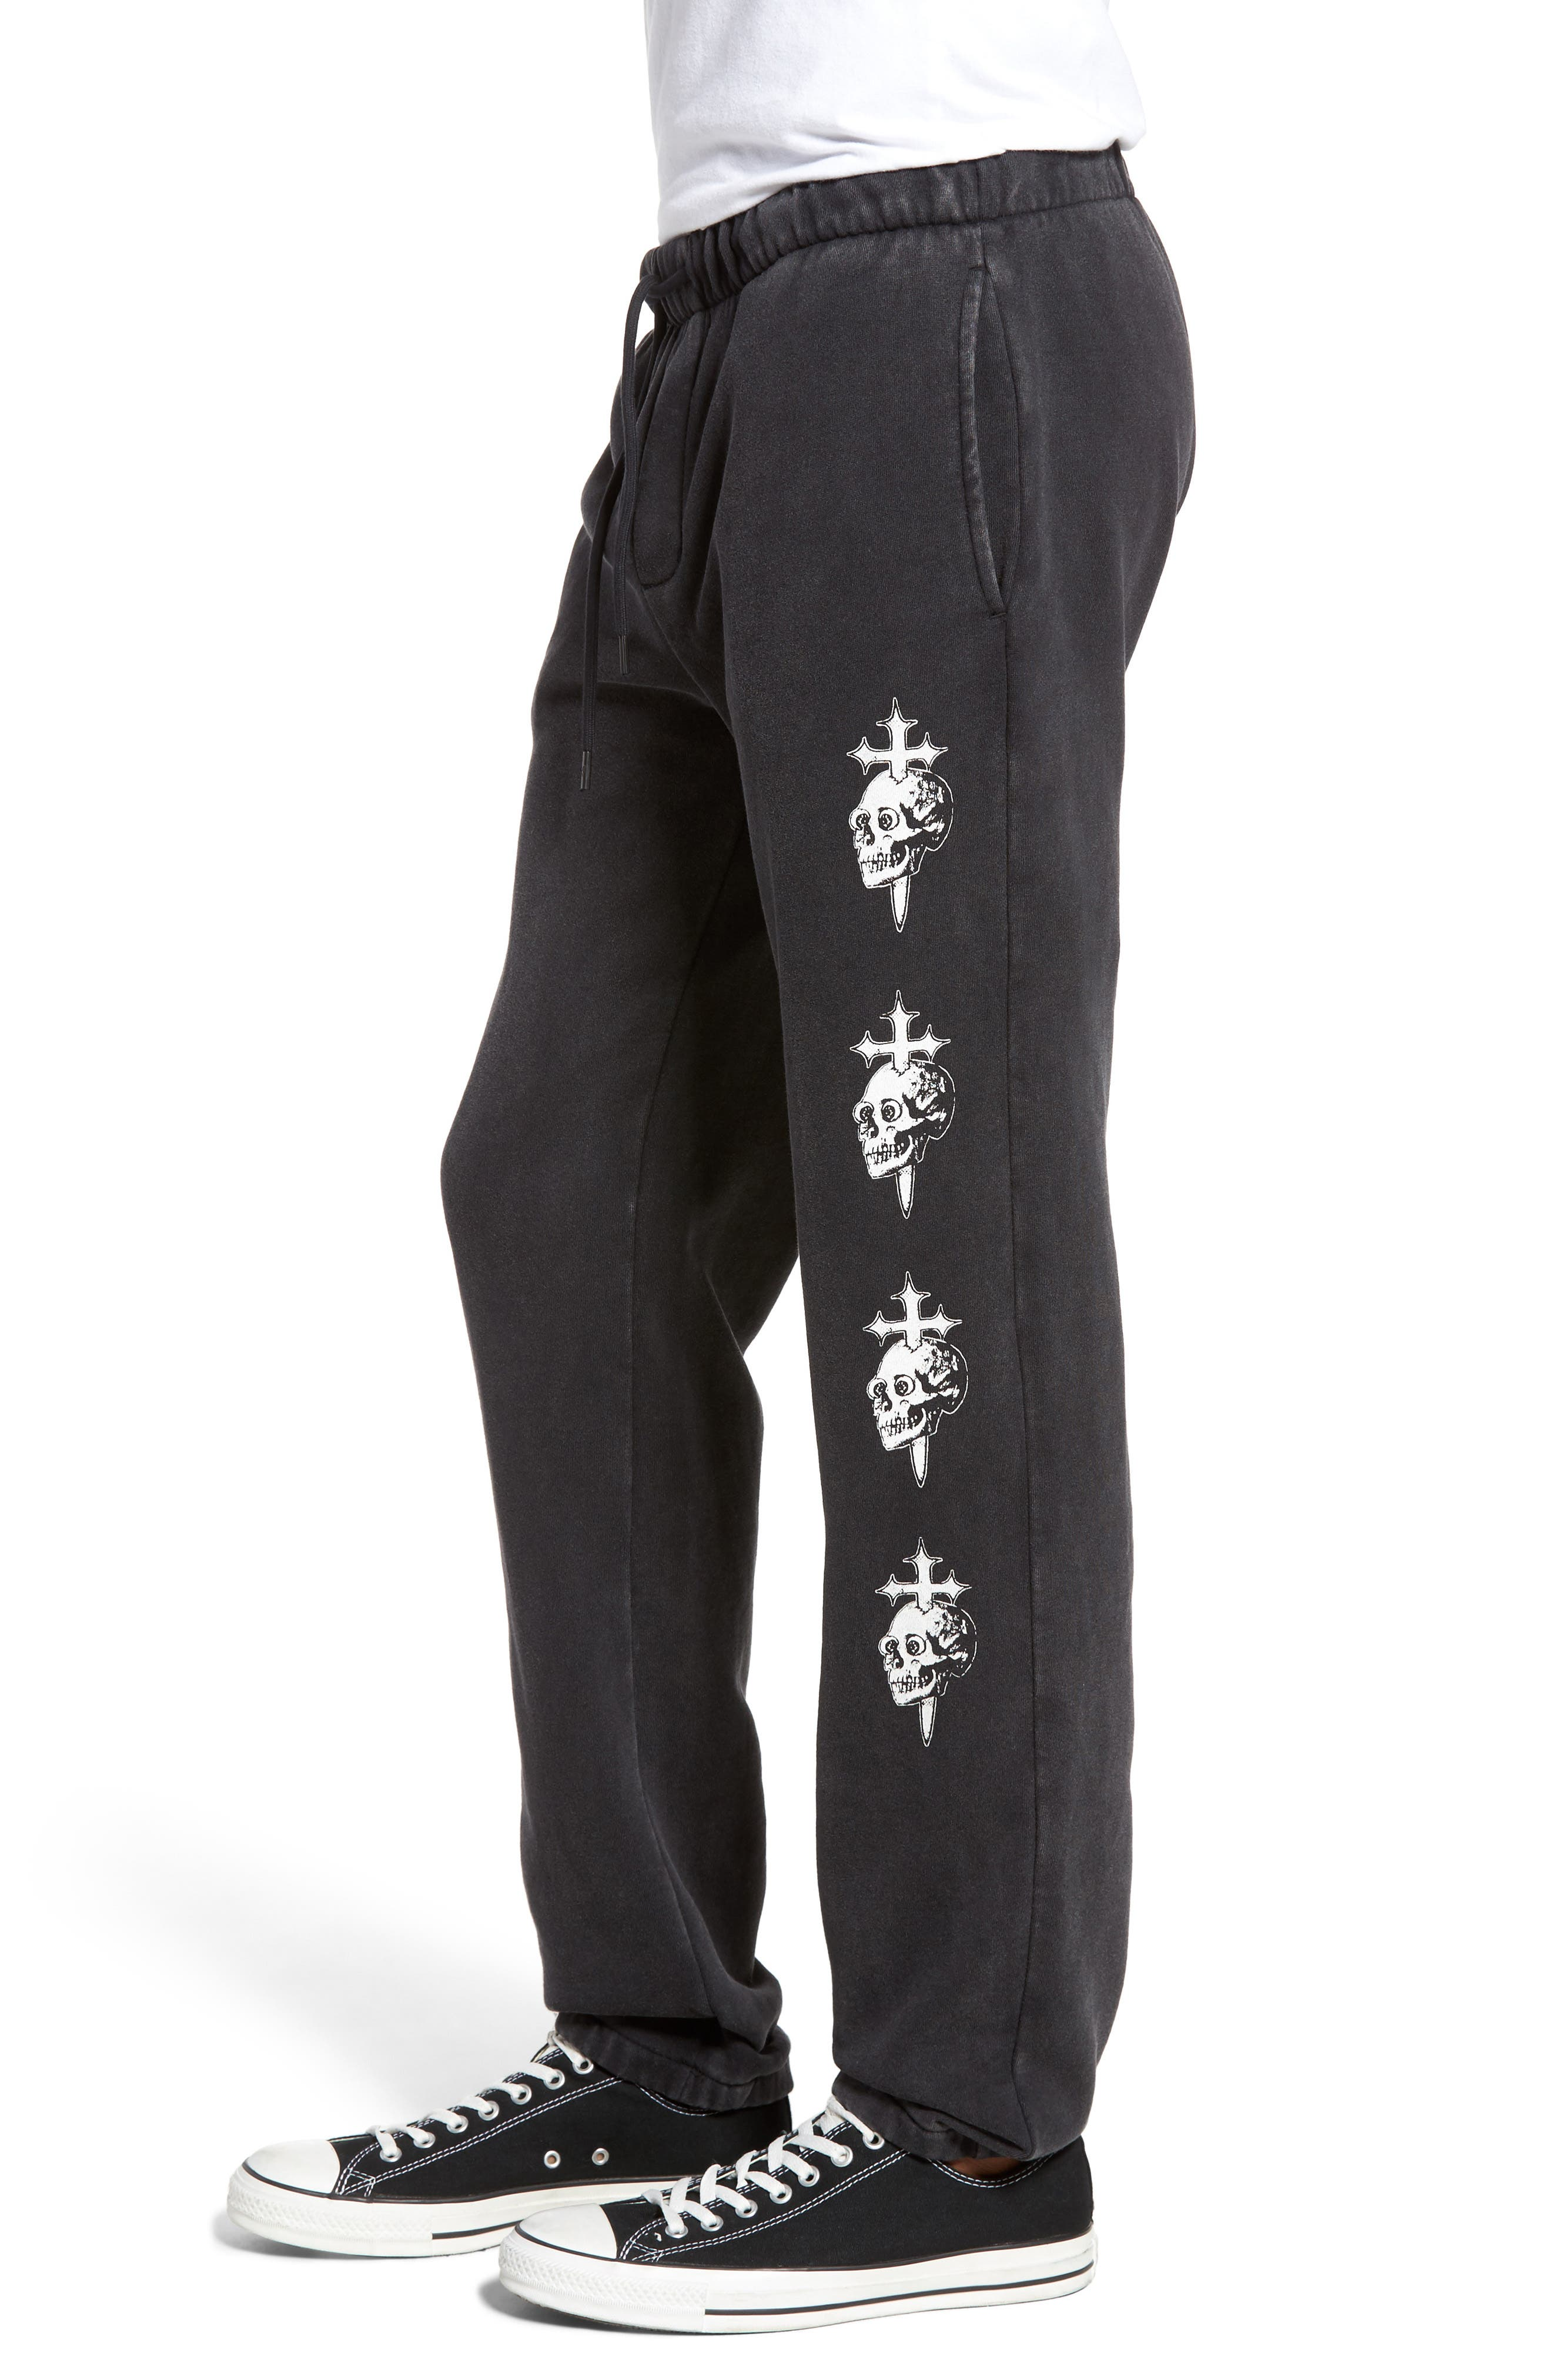 Skull Cross Print Sweatpants,                             Alternate thumbnail 3, color,                             002